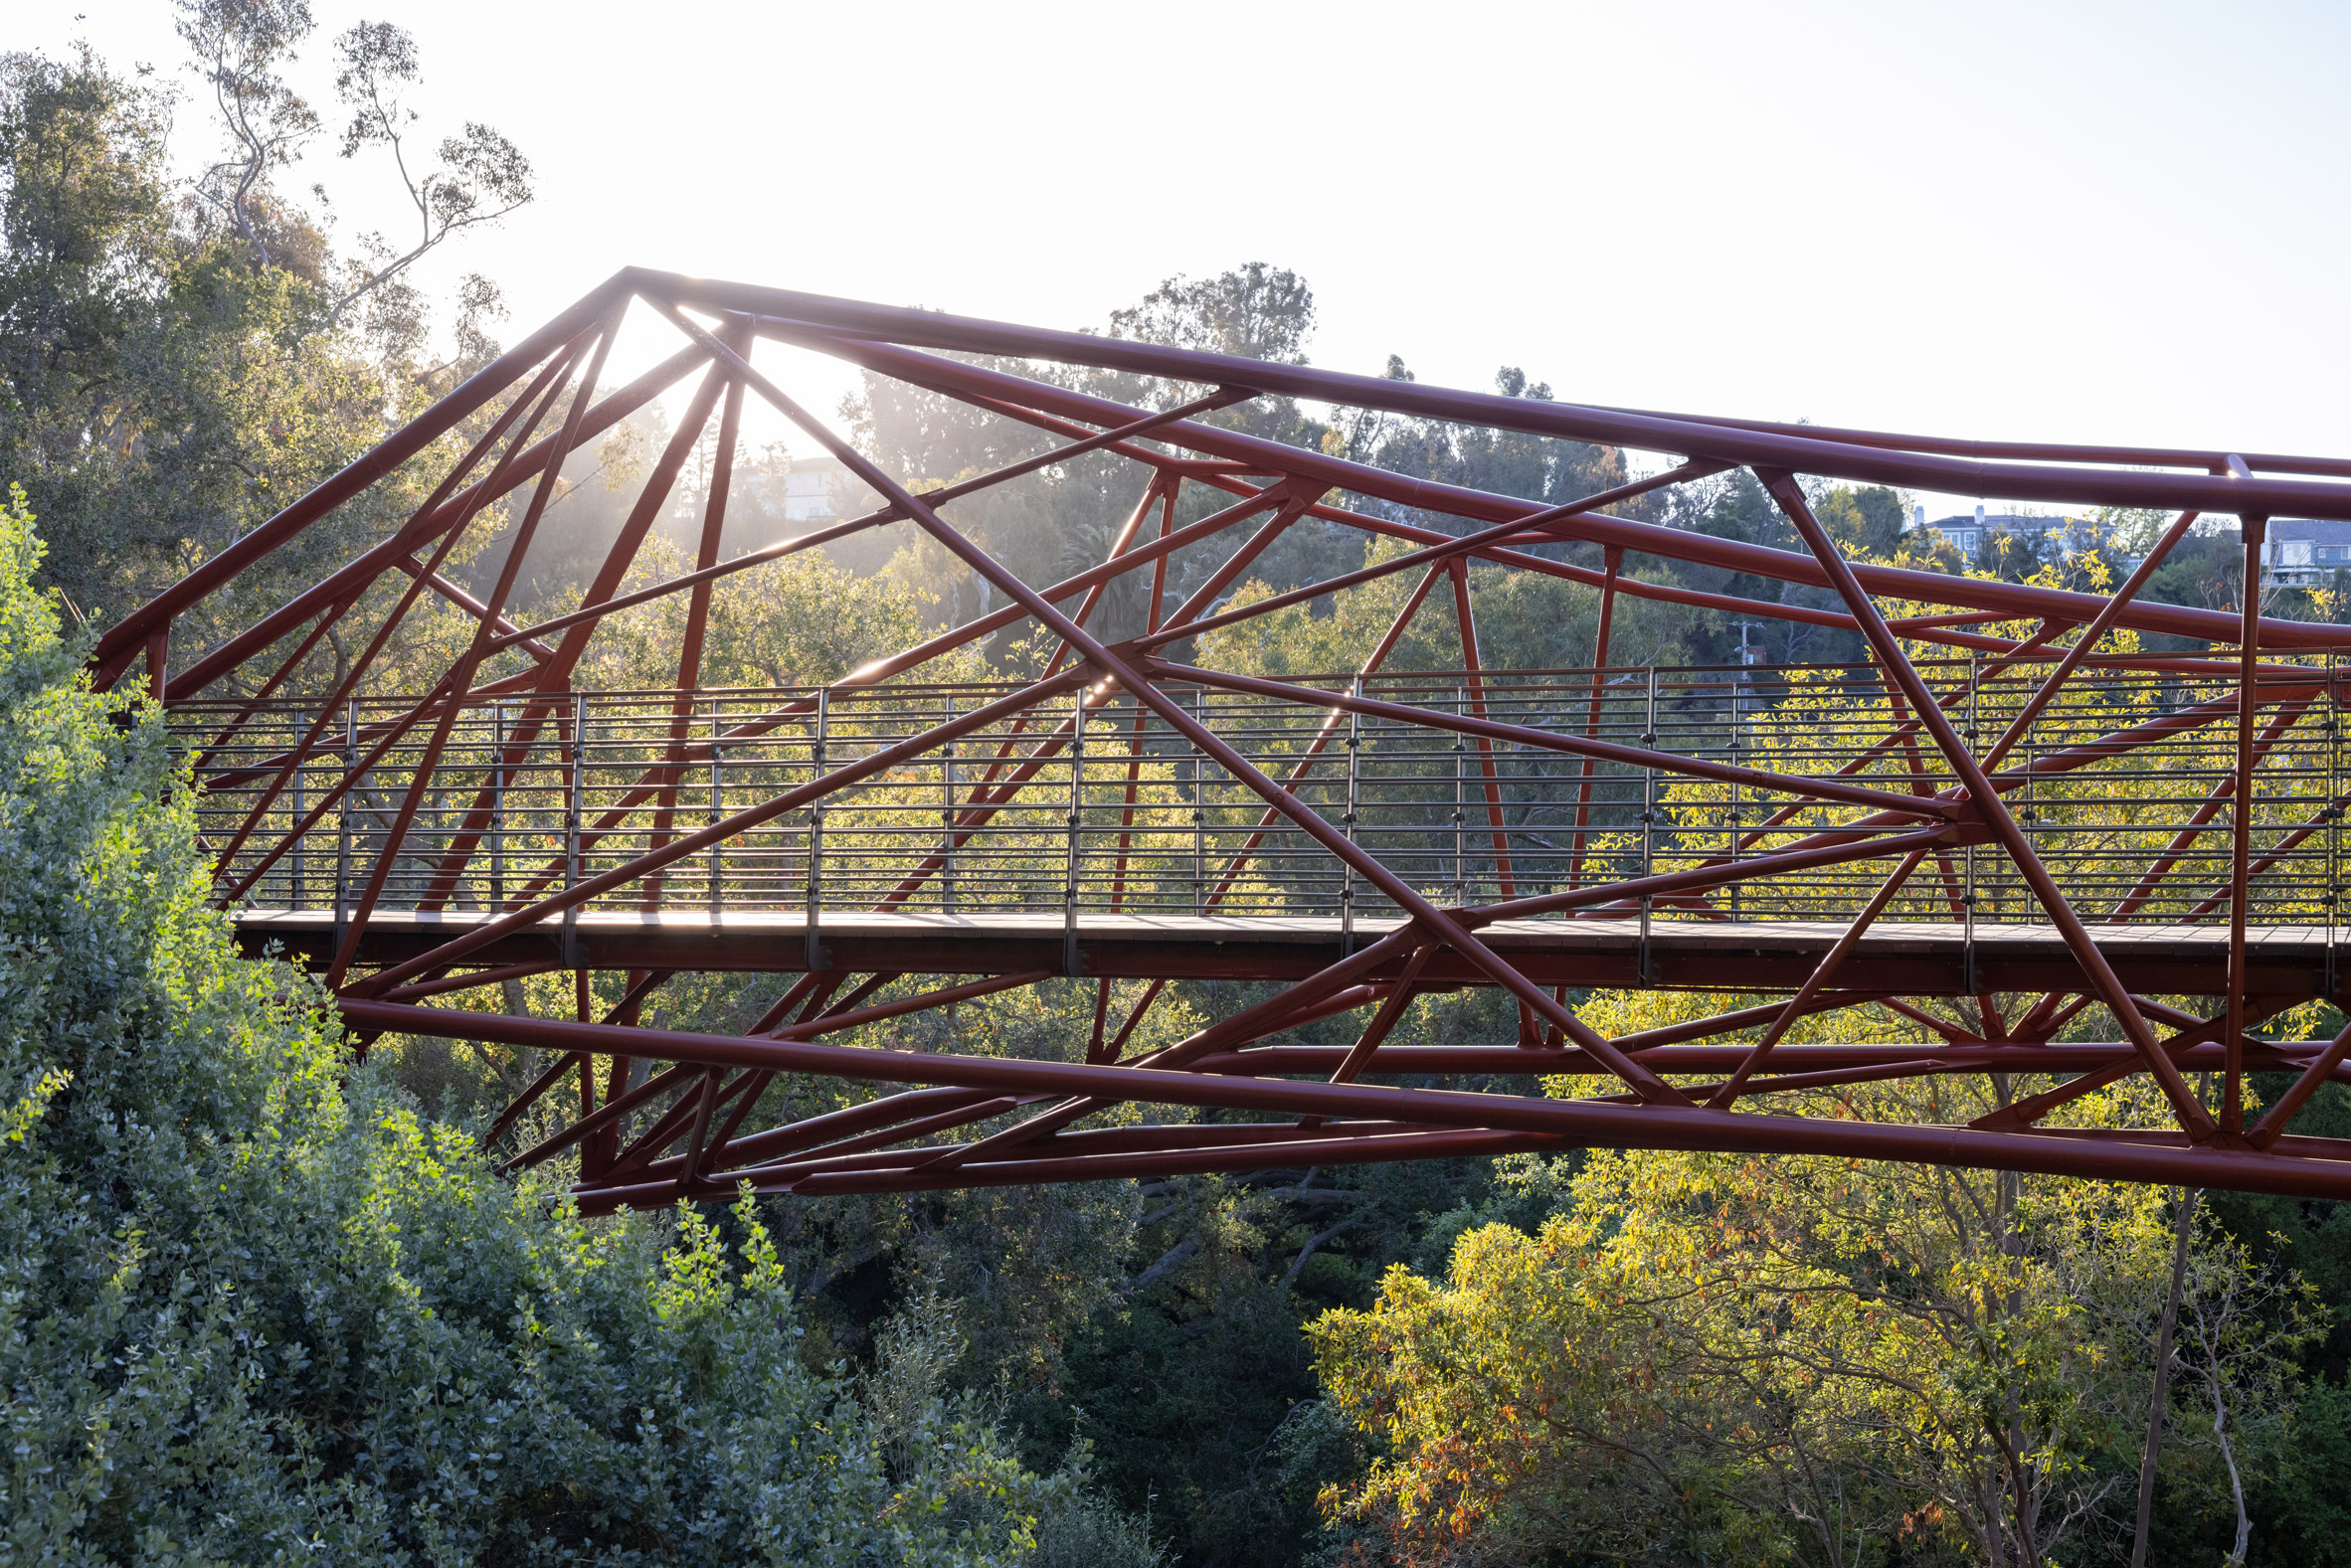 Web-like layered complex steel structure